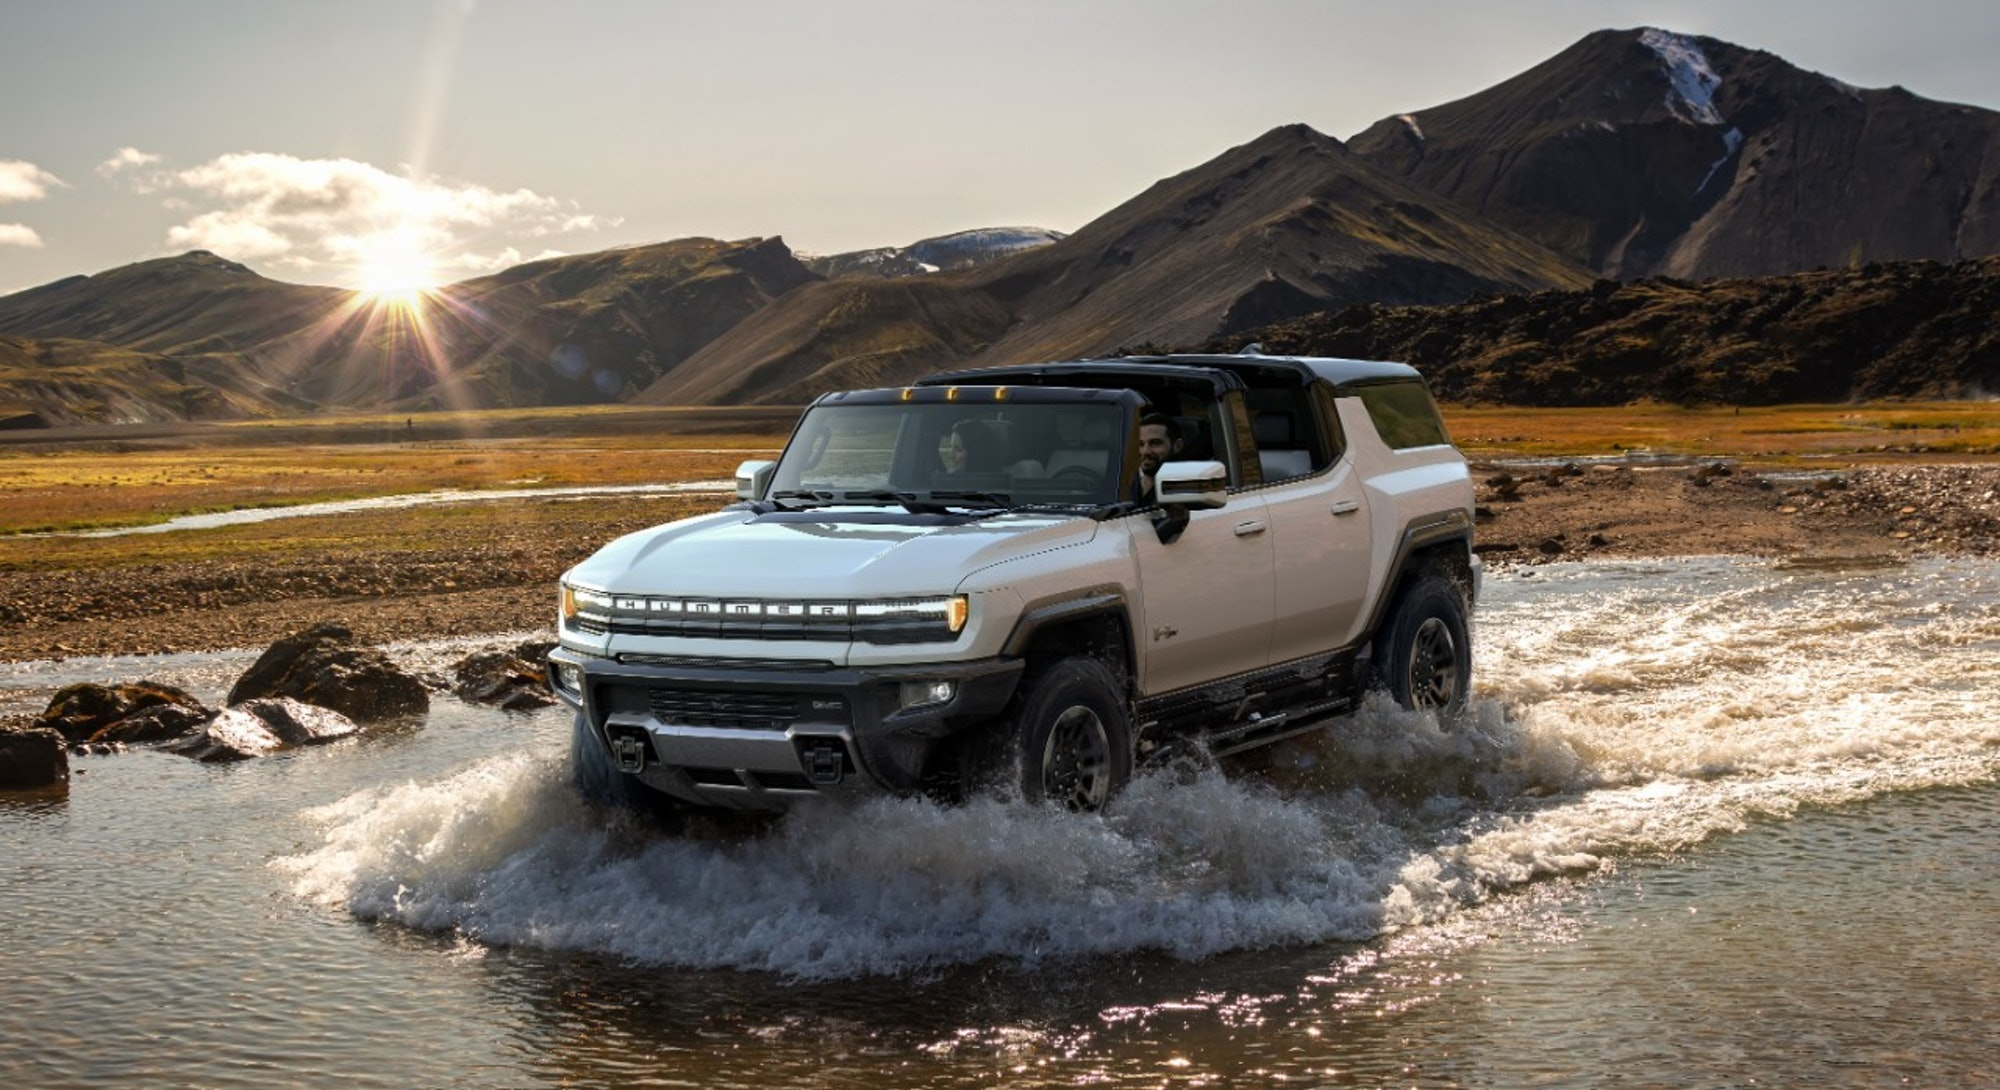 Hummer's electric SUV. Electric vehicles. GMC. EV. Electric cars.